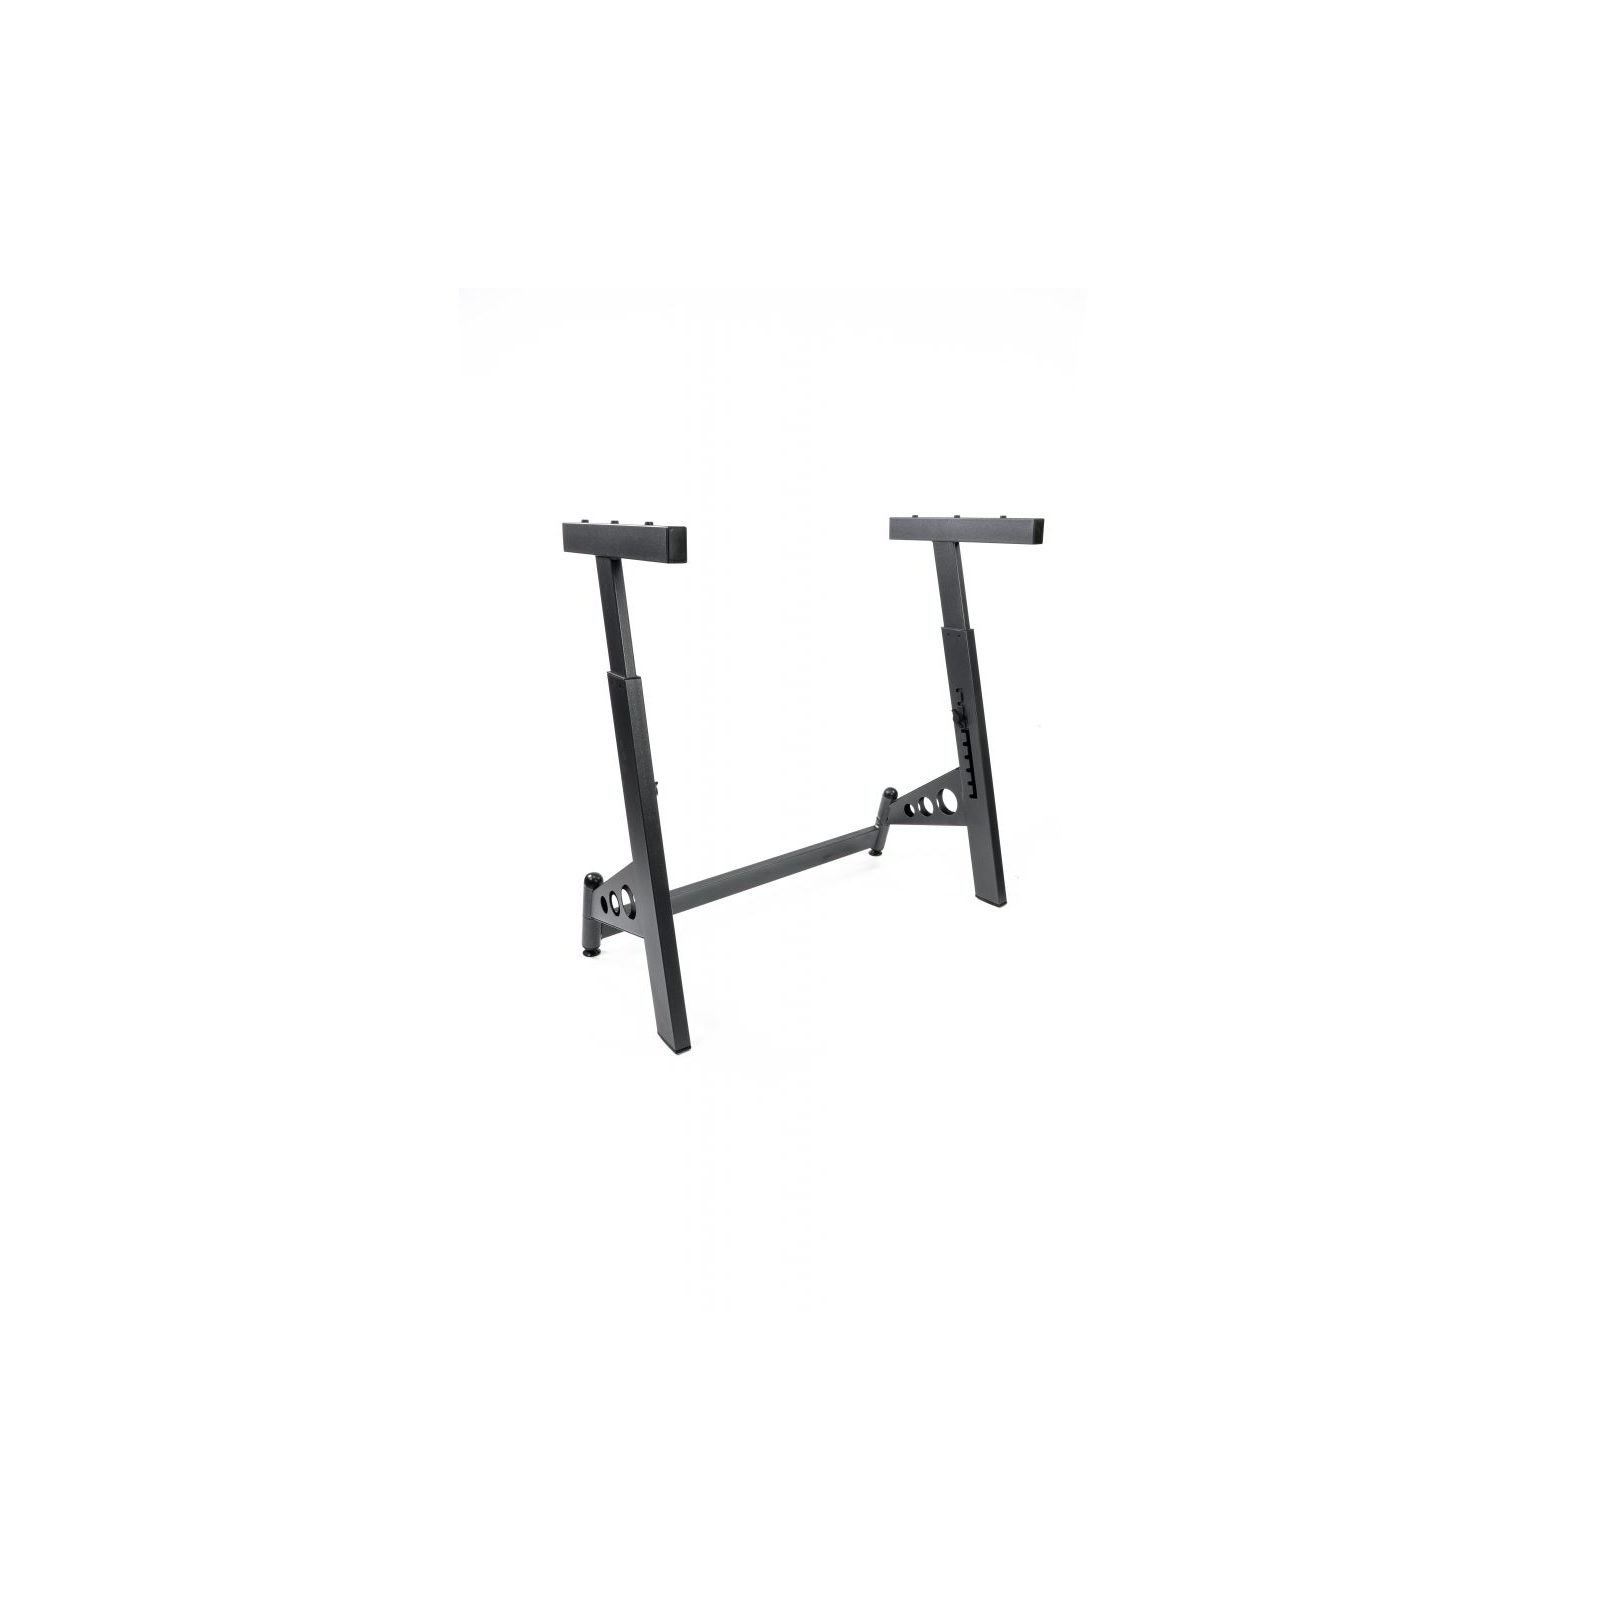 athletic kb s heavy duty keyboard stand. Black Bedroom Furniture Sets. Home Design Ideas